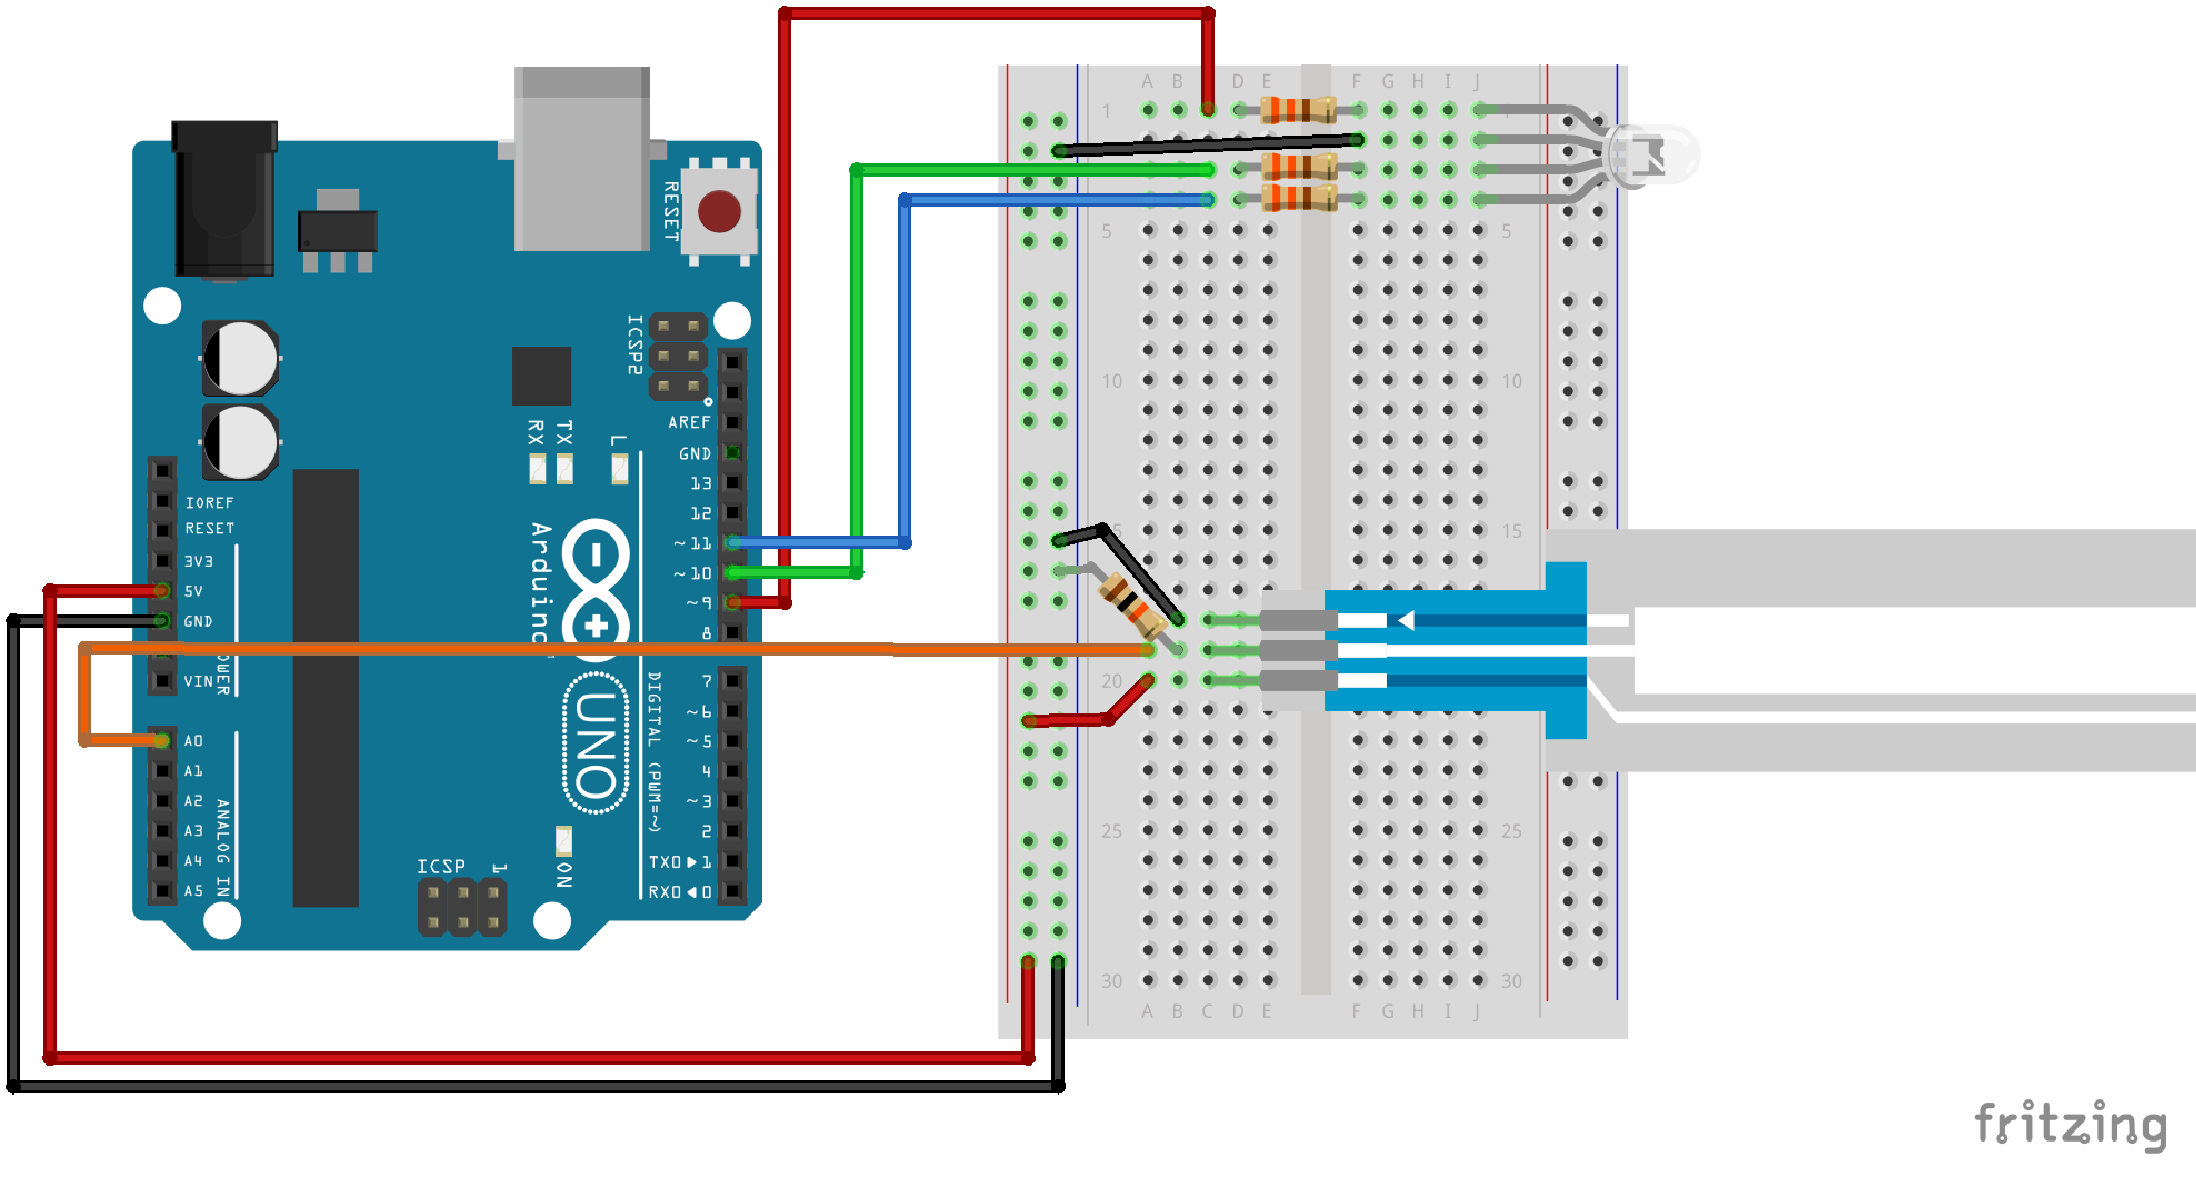 sik experiment guide for arduino v3 2 learn sparkfun com rh learn sparkfun com Linear Potentiometer Wiring Types of Potentiometers